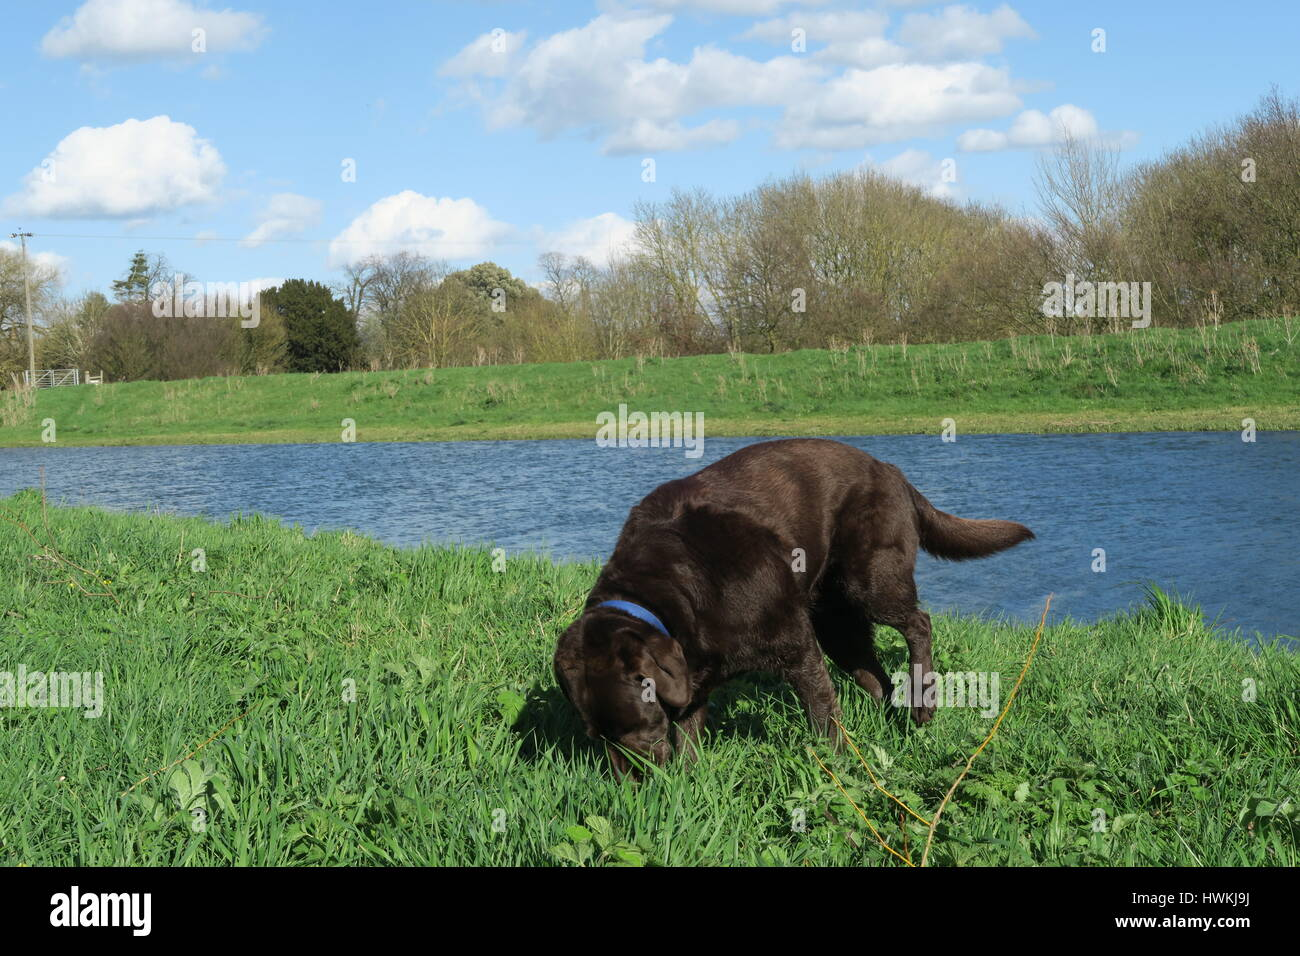 Chocolate Labrador snacking on grass on a riverbank - Stock Image